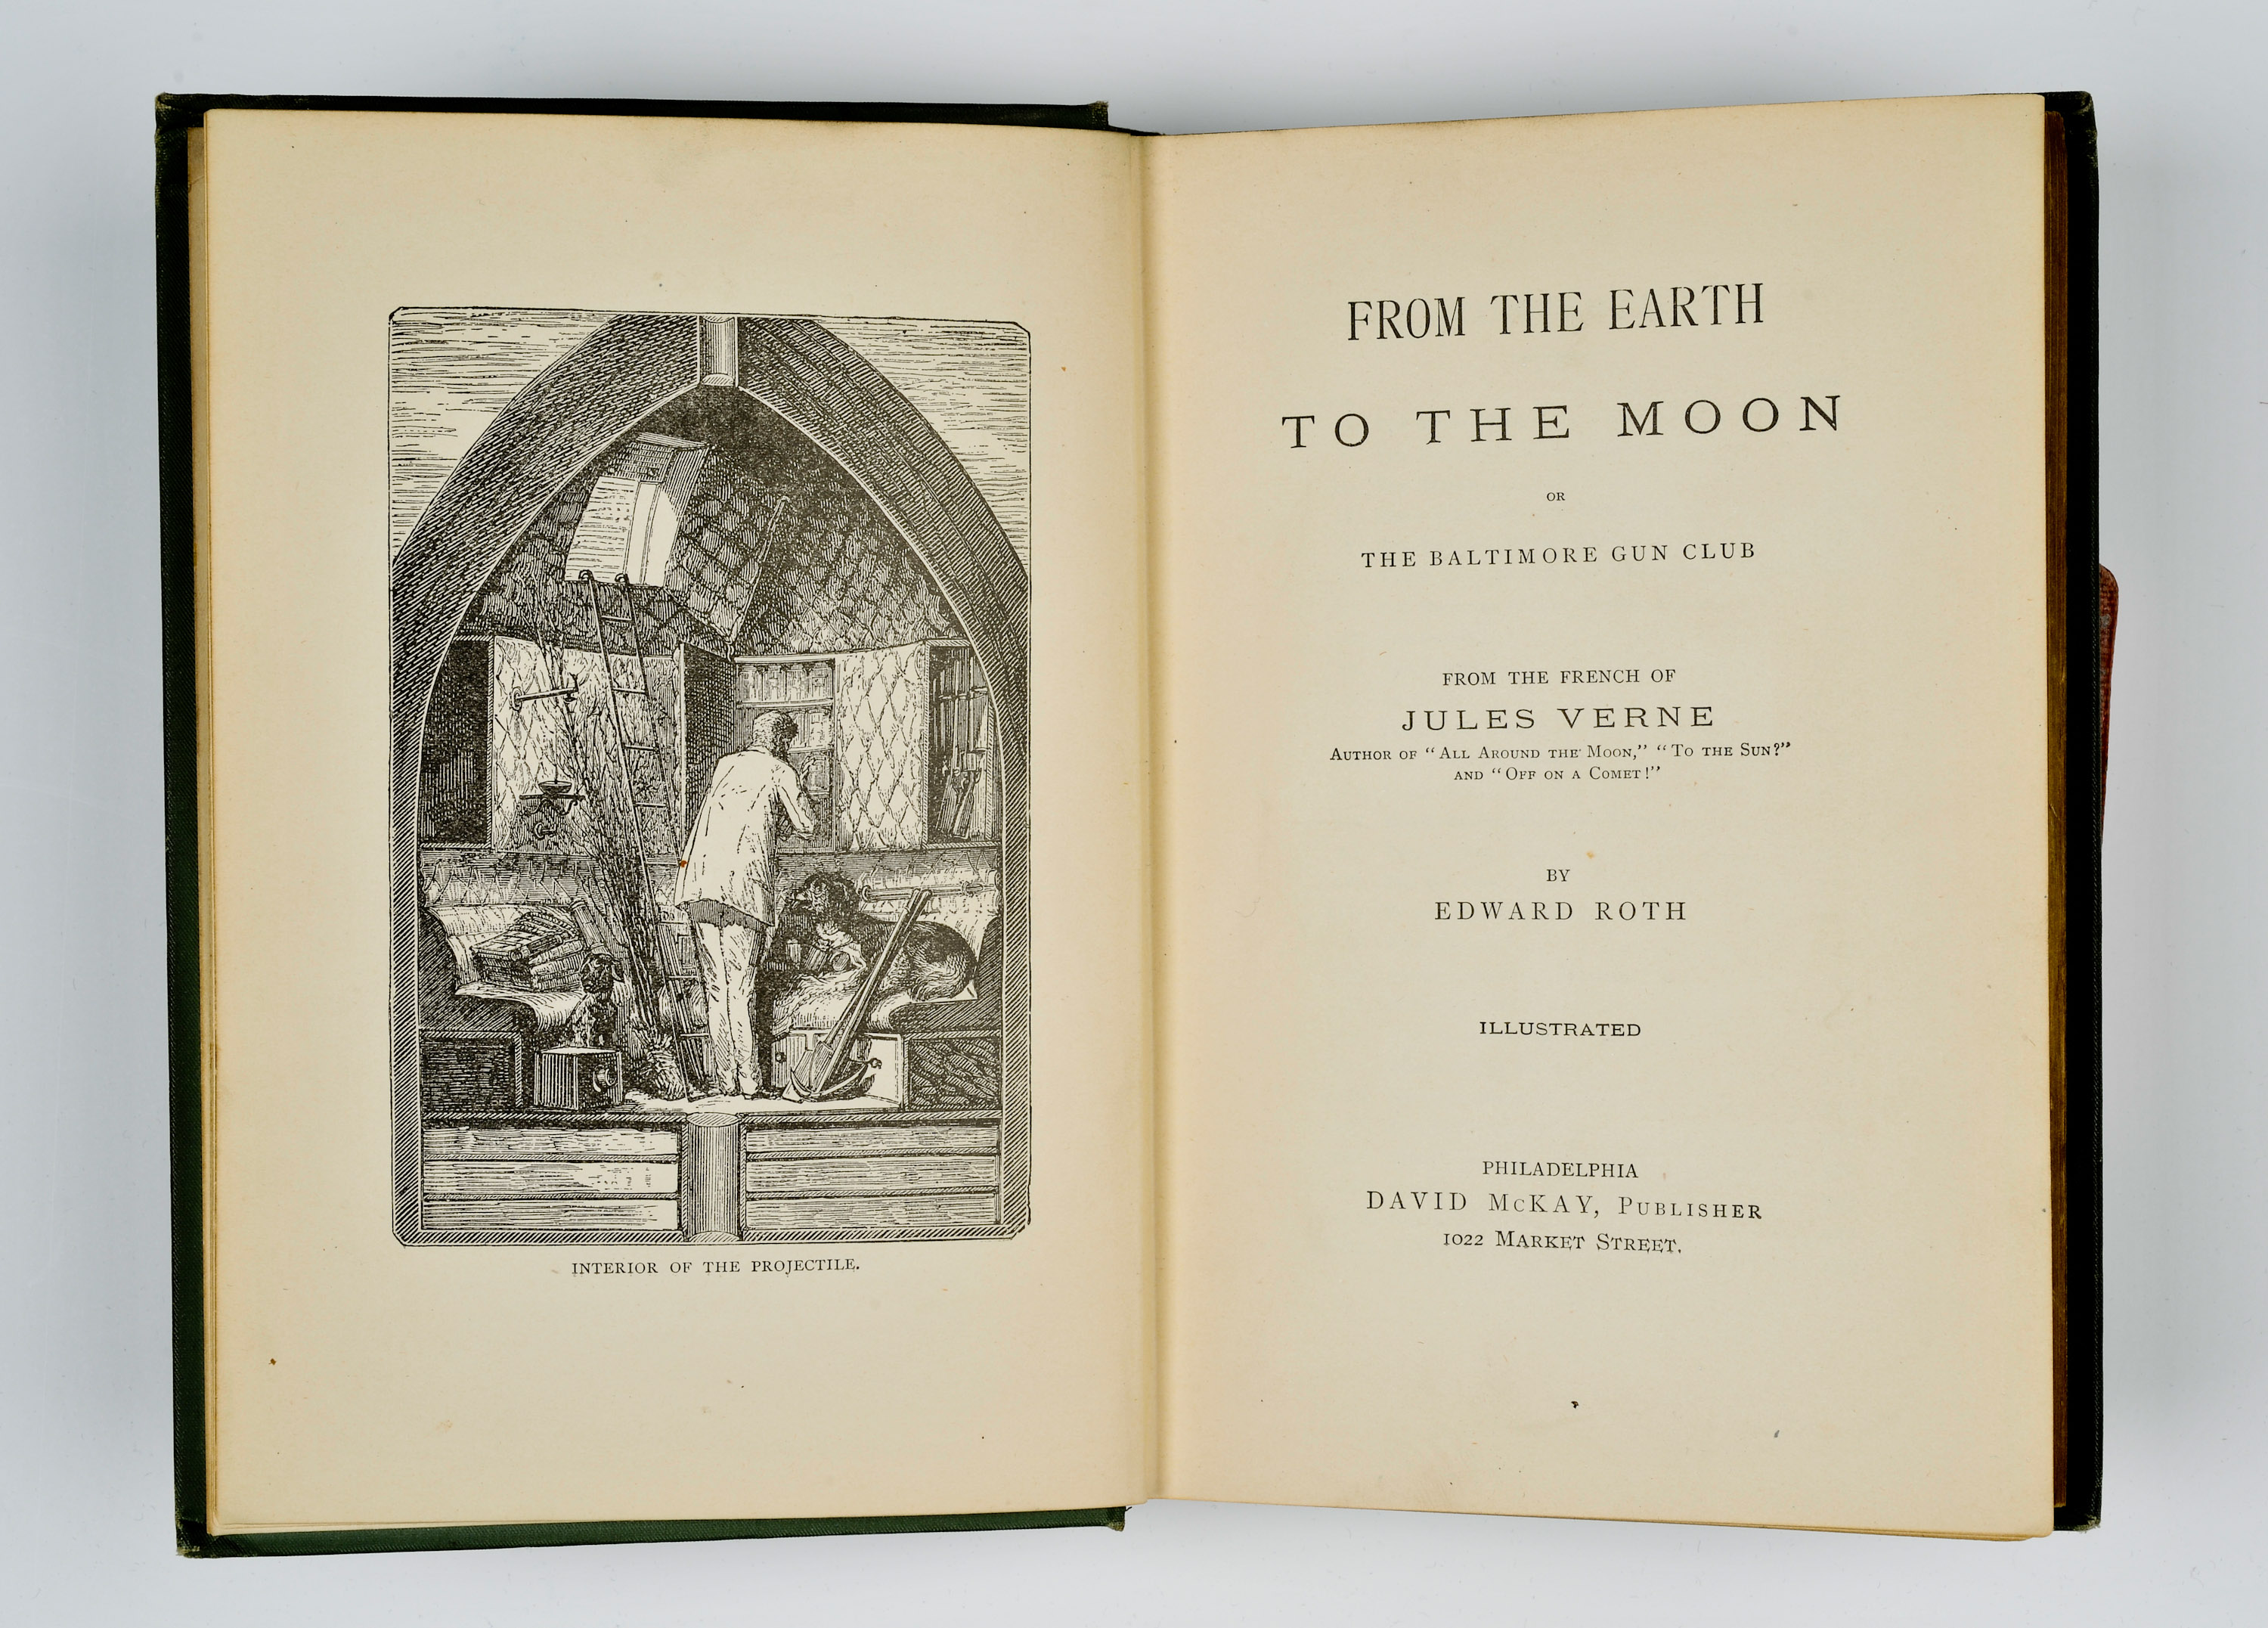 Jules Verne's From the Earth to the Moon